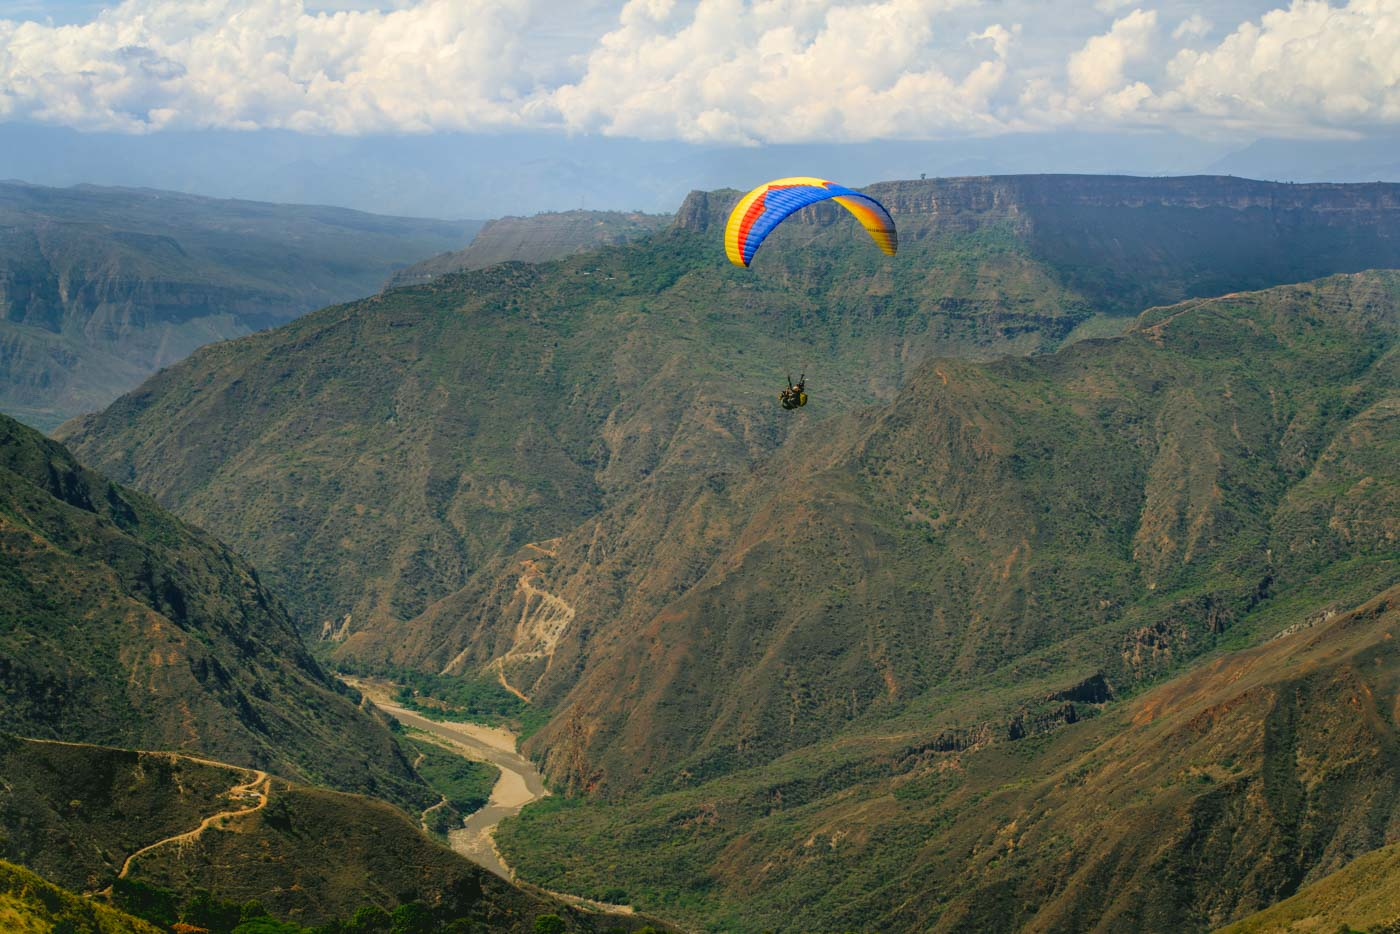 Go to San Gil, Colombia to get your adrenaline fix while in South America